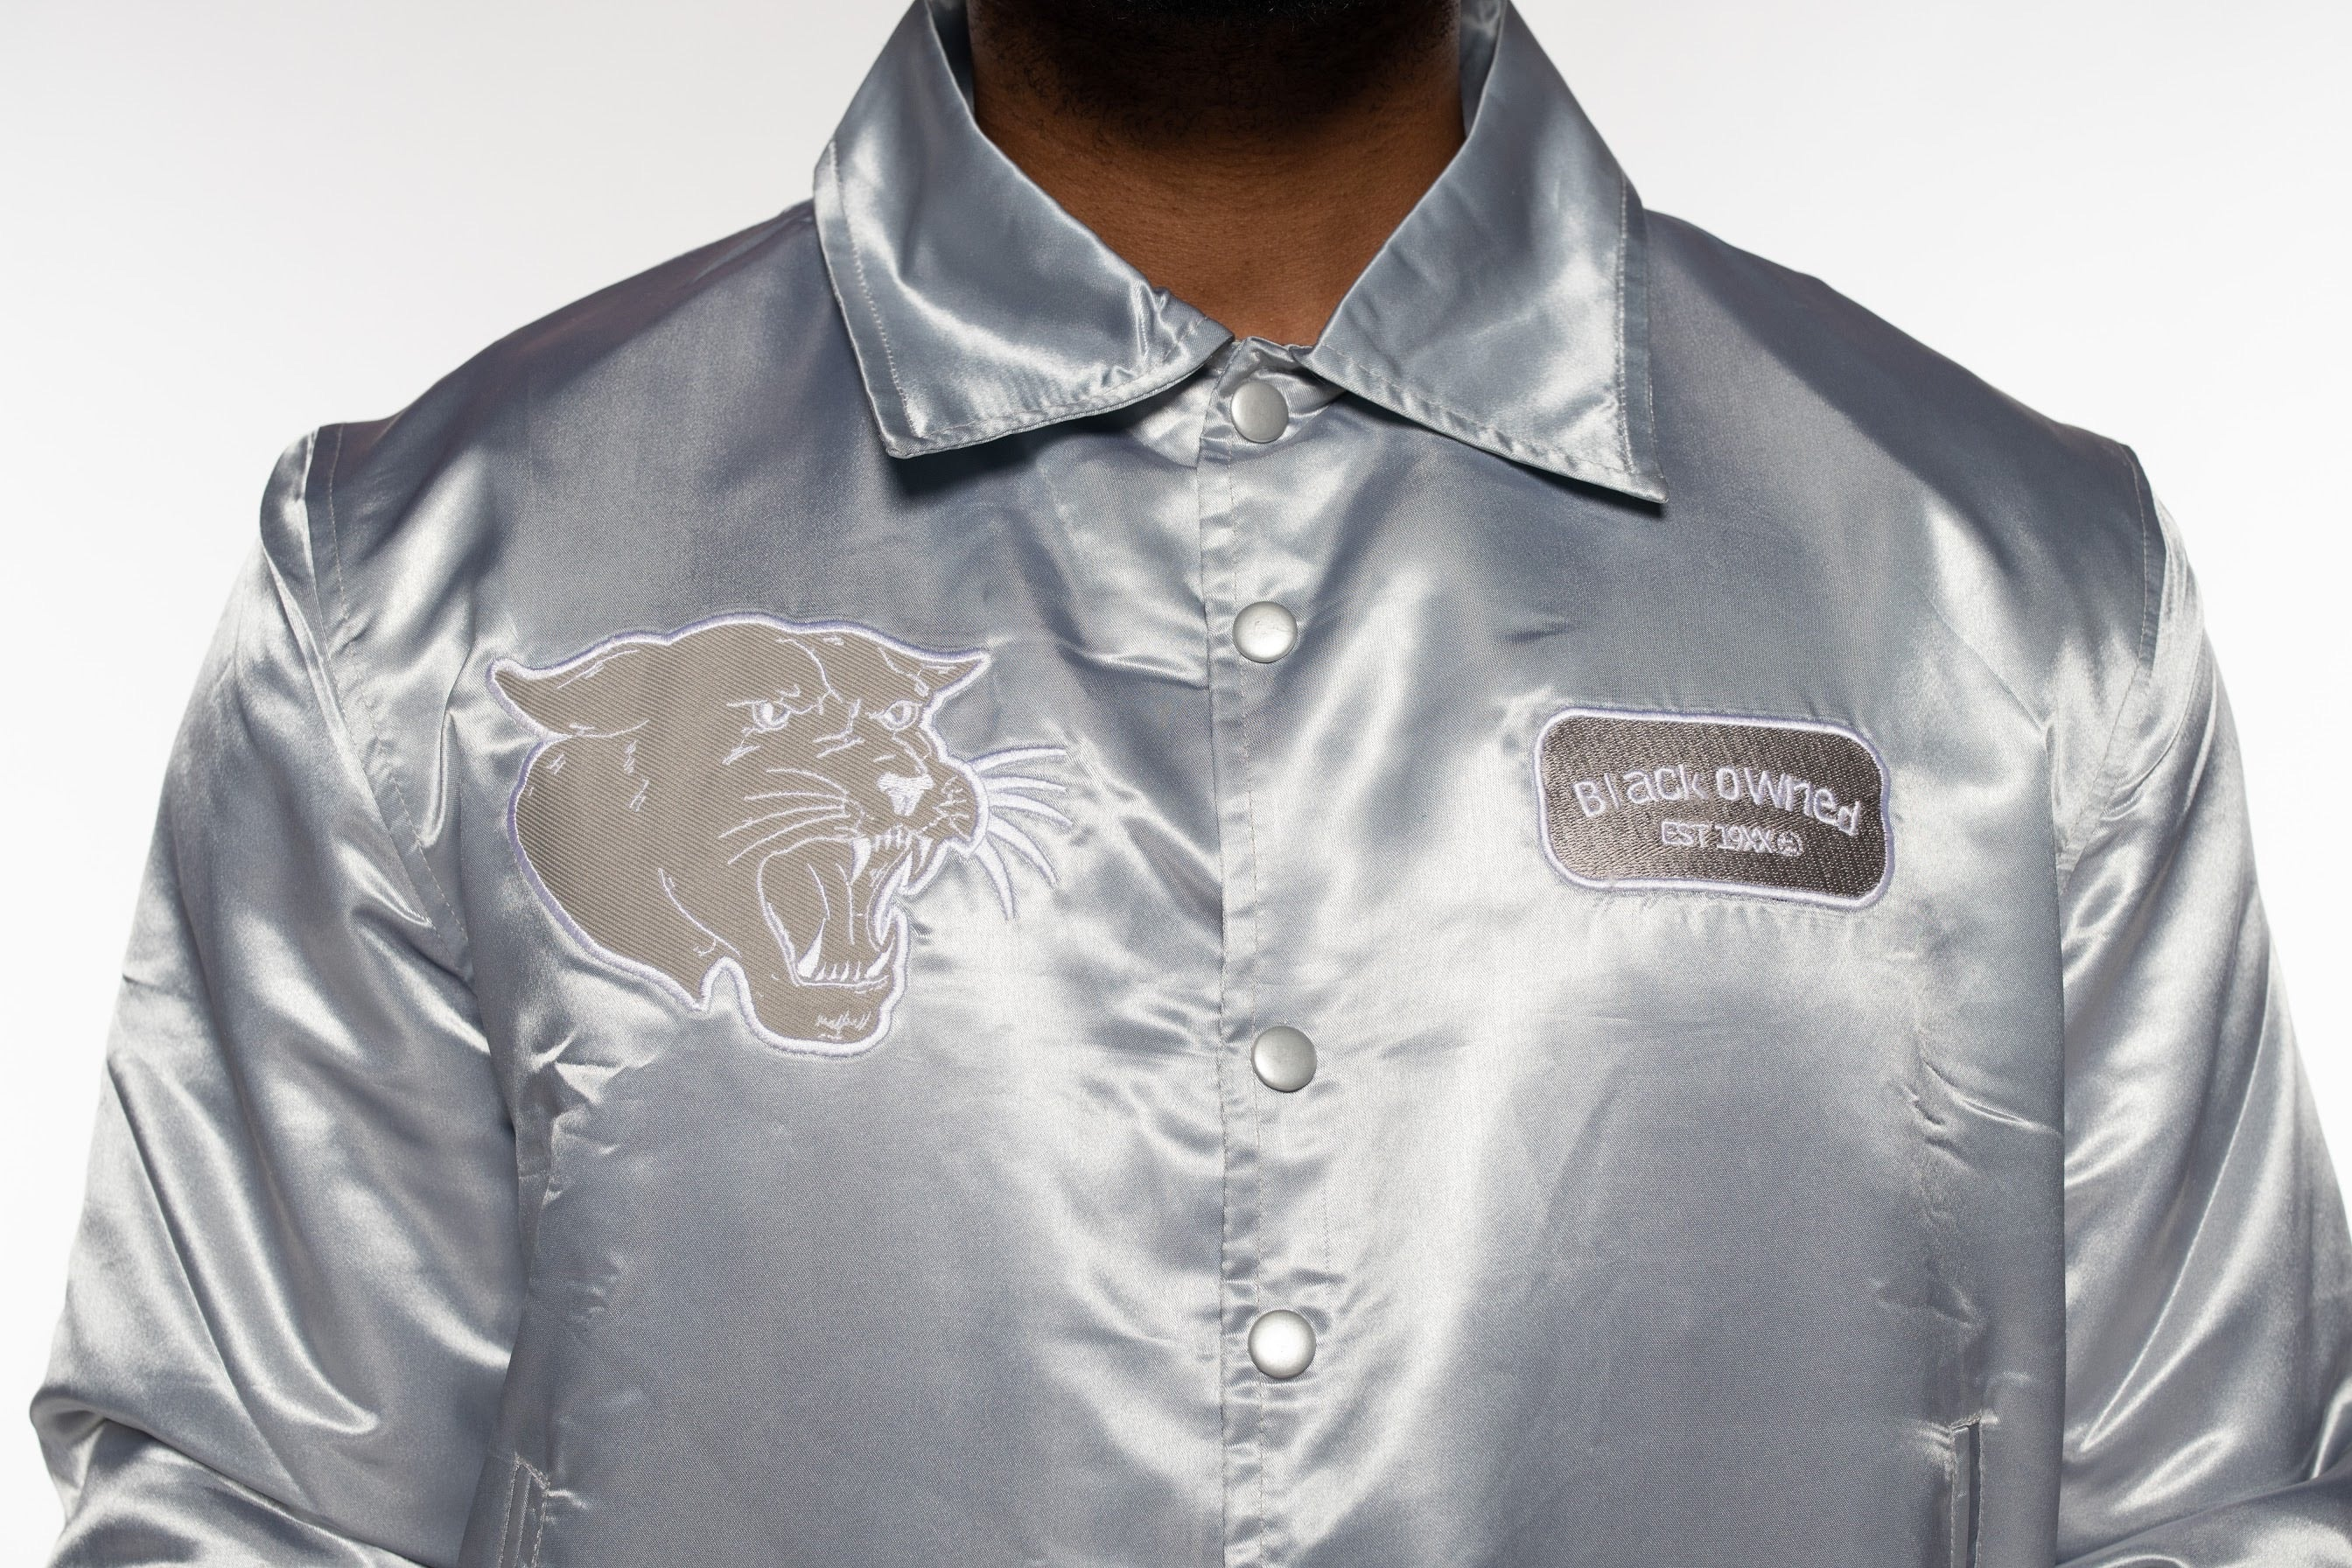 9 Silver Vintage Panther Team Jacket (with White Gradient)